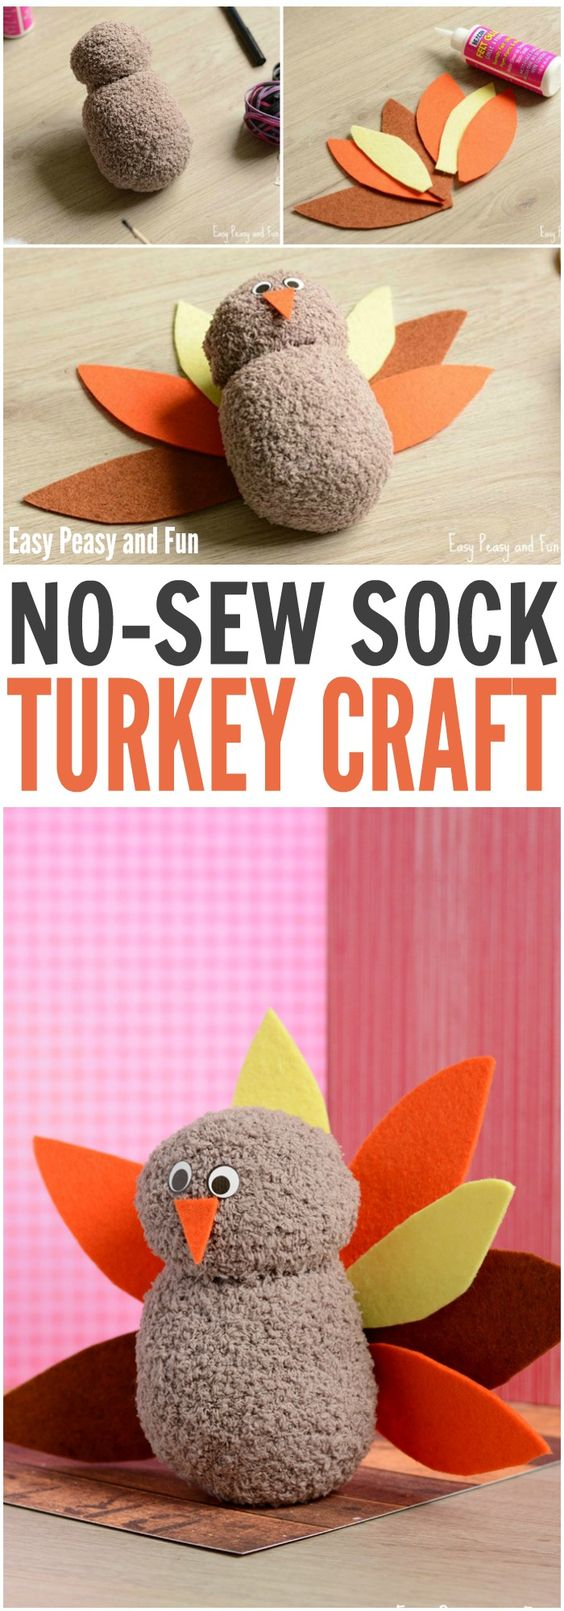 No-Sew Sock Turkey Craft.